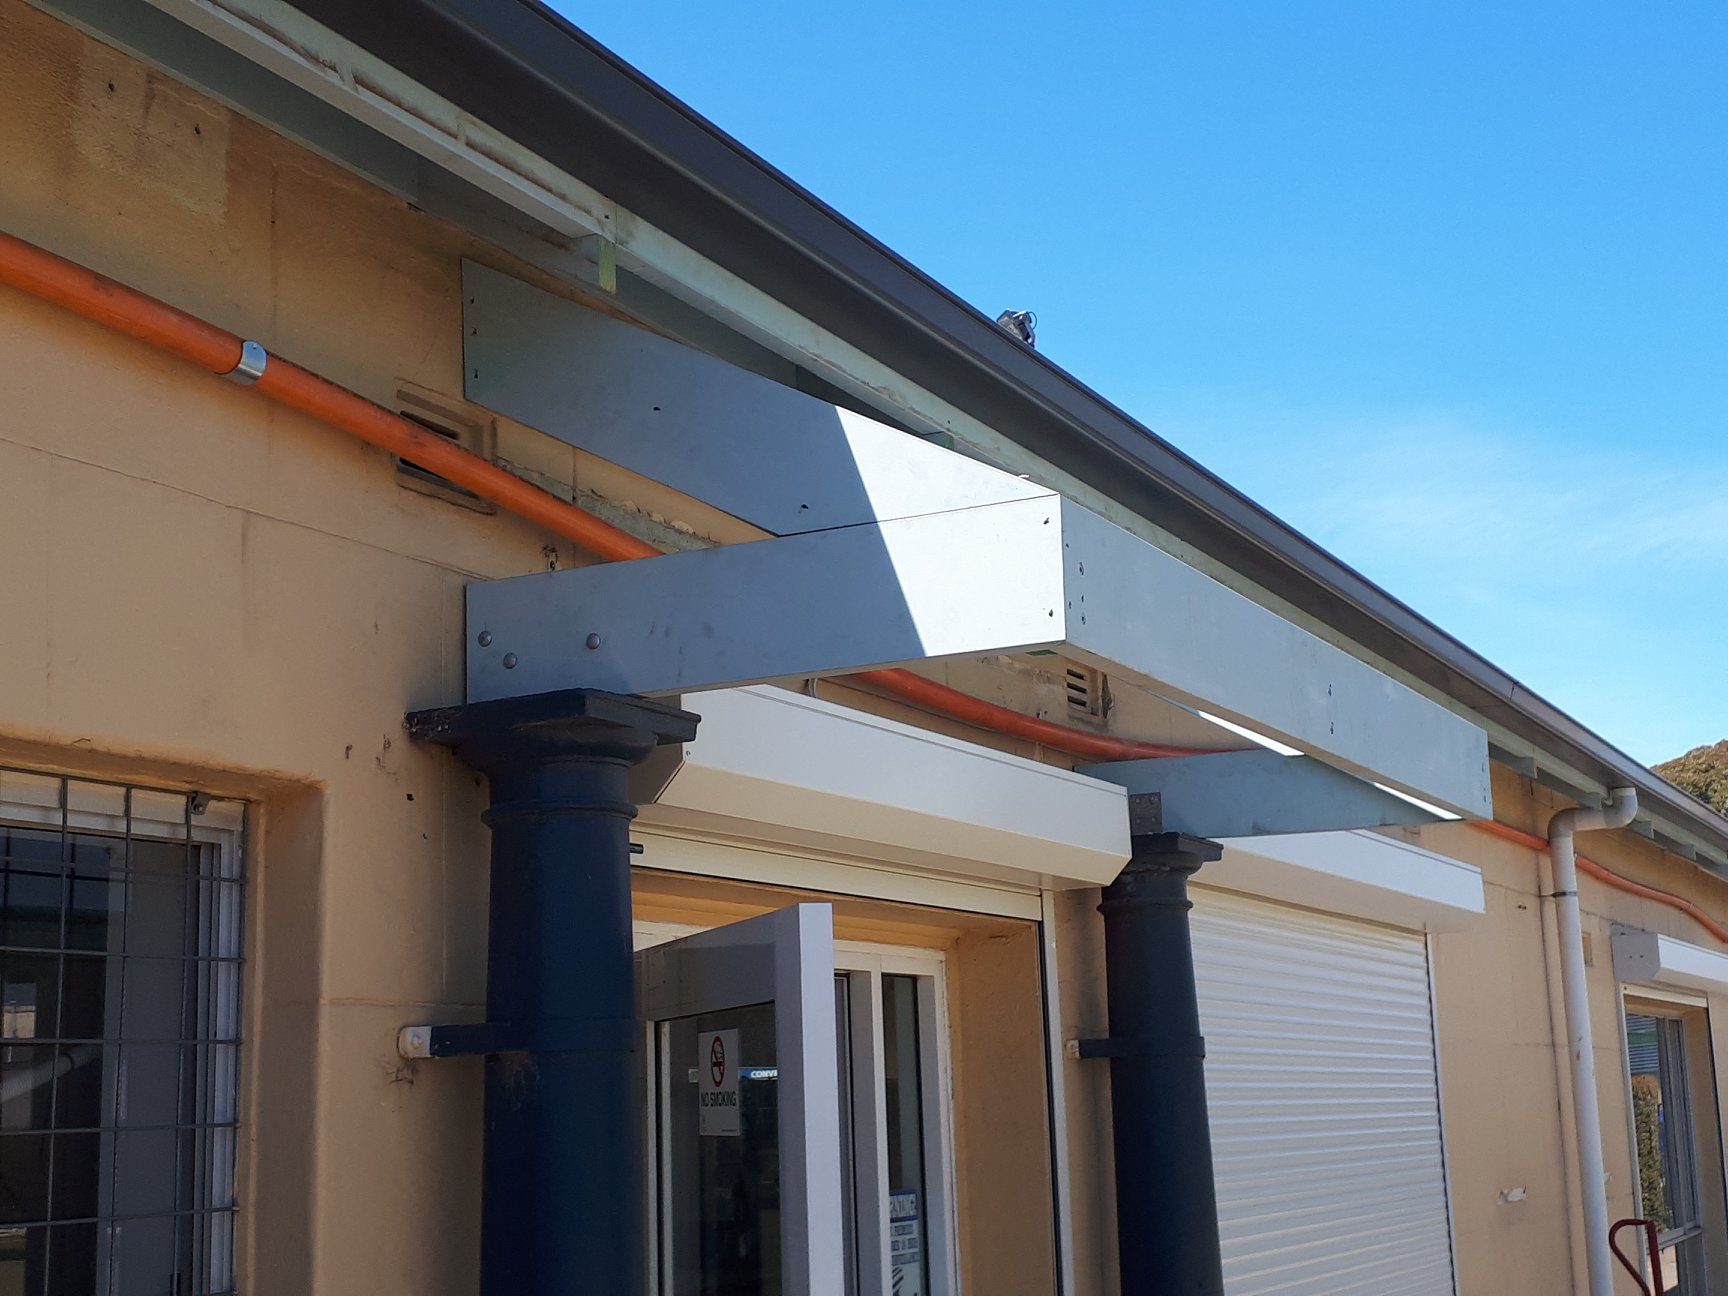 181205 New framed canopy over southern doors